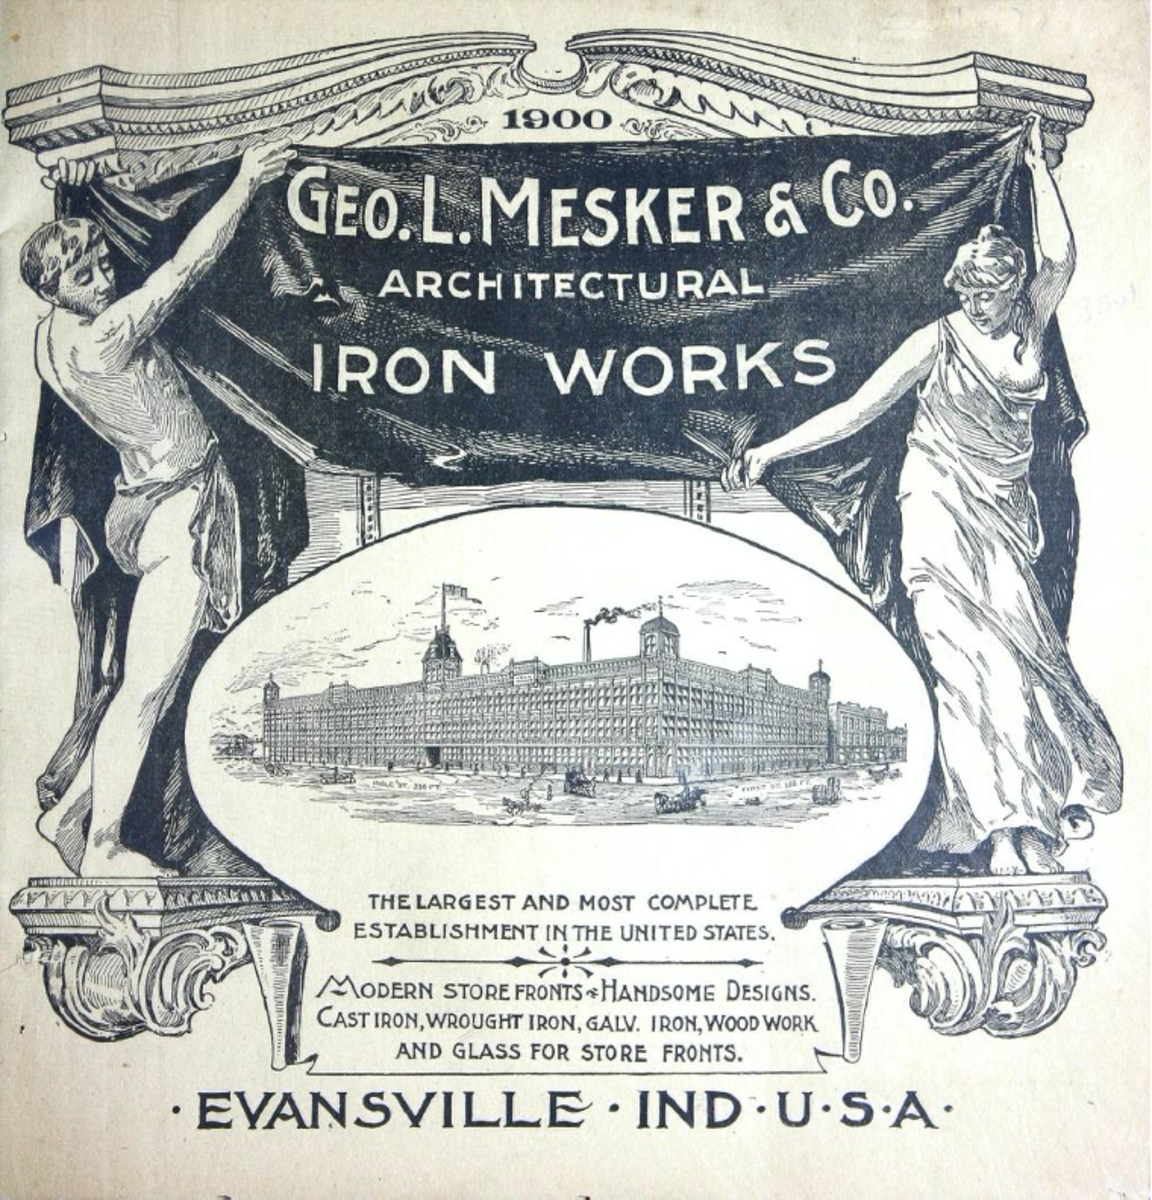 Geo. L. Mesker & Co., Architectural Iron Works